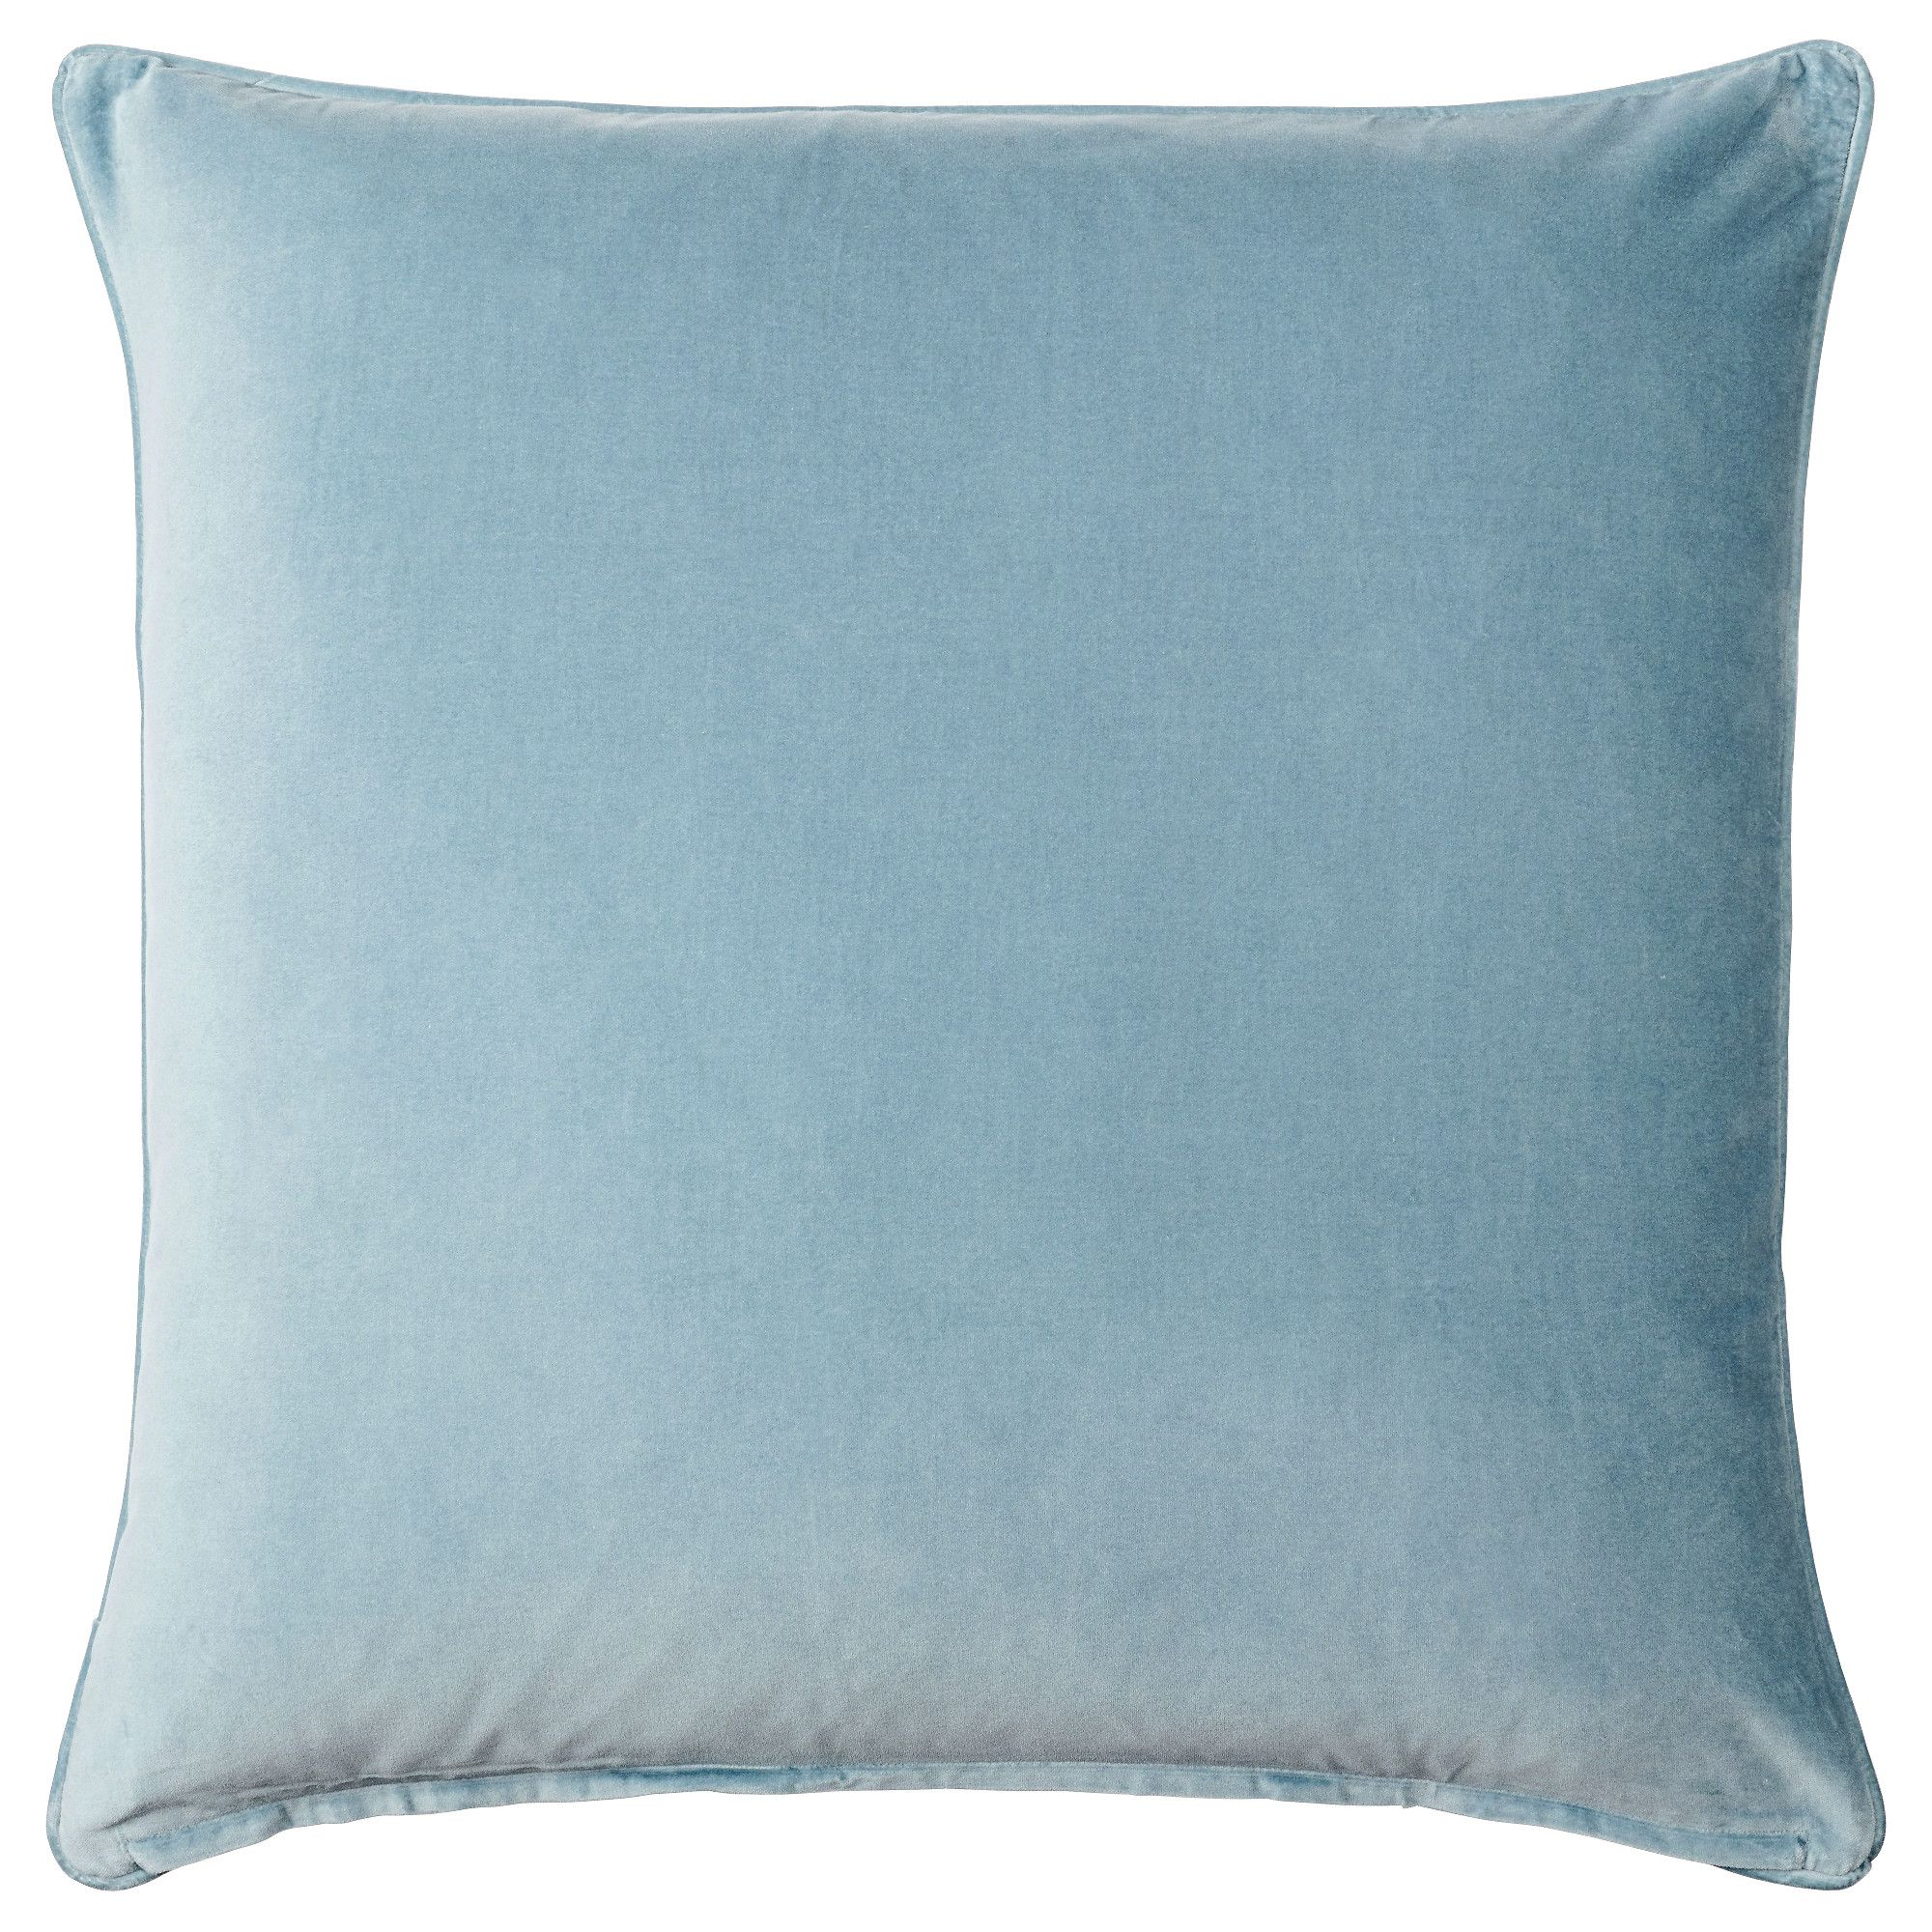 Sanela cushion cover light blue living spaces bedrooms and spaces